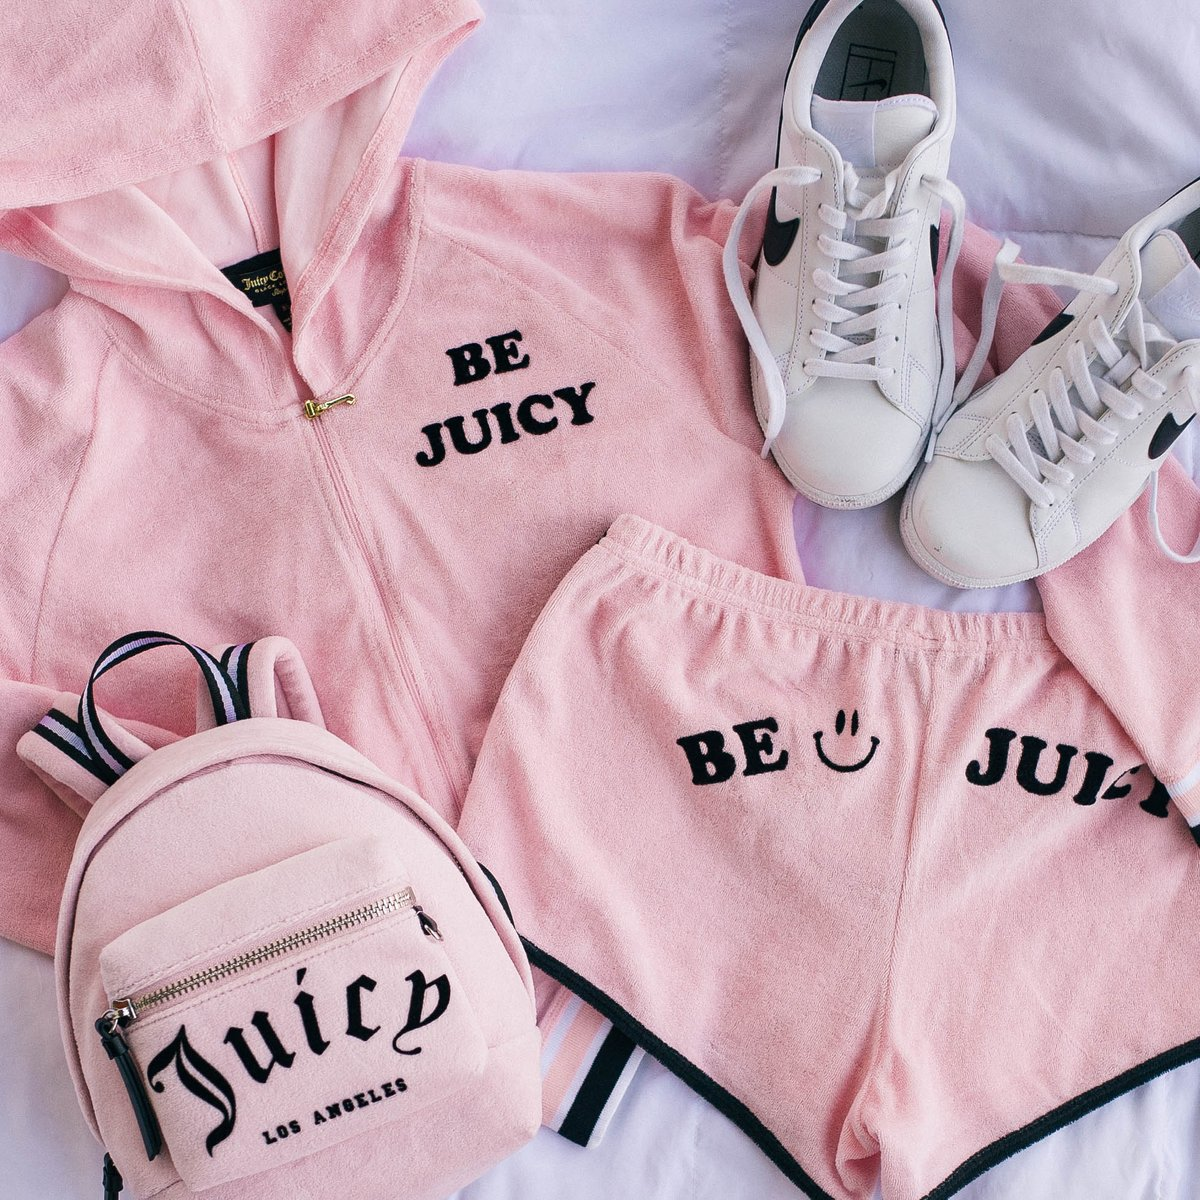 Urban Outfitters On Twitter It S Here Juicycouture For Urban